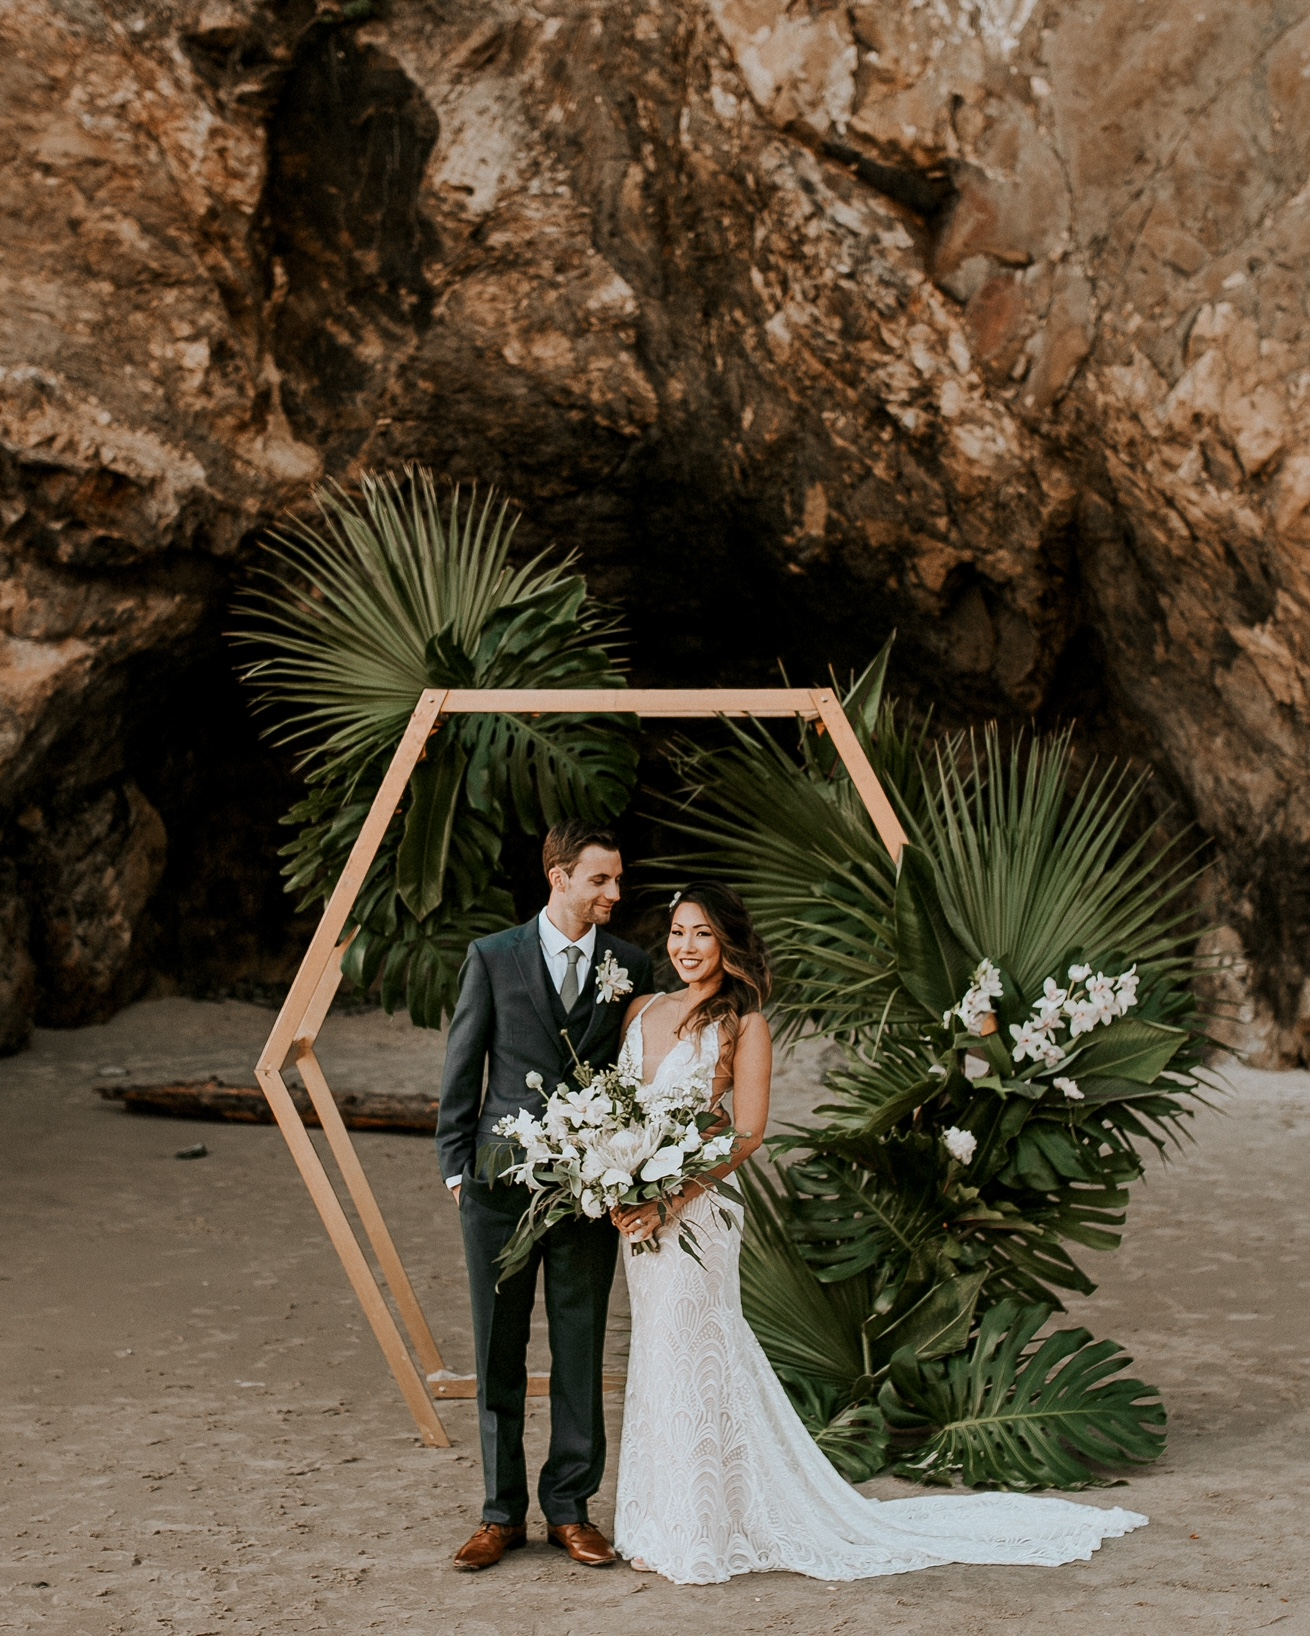 a hexagon wedding arch decorated with large tropical leaves and white orchids feels very boho and tropical like